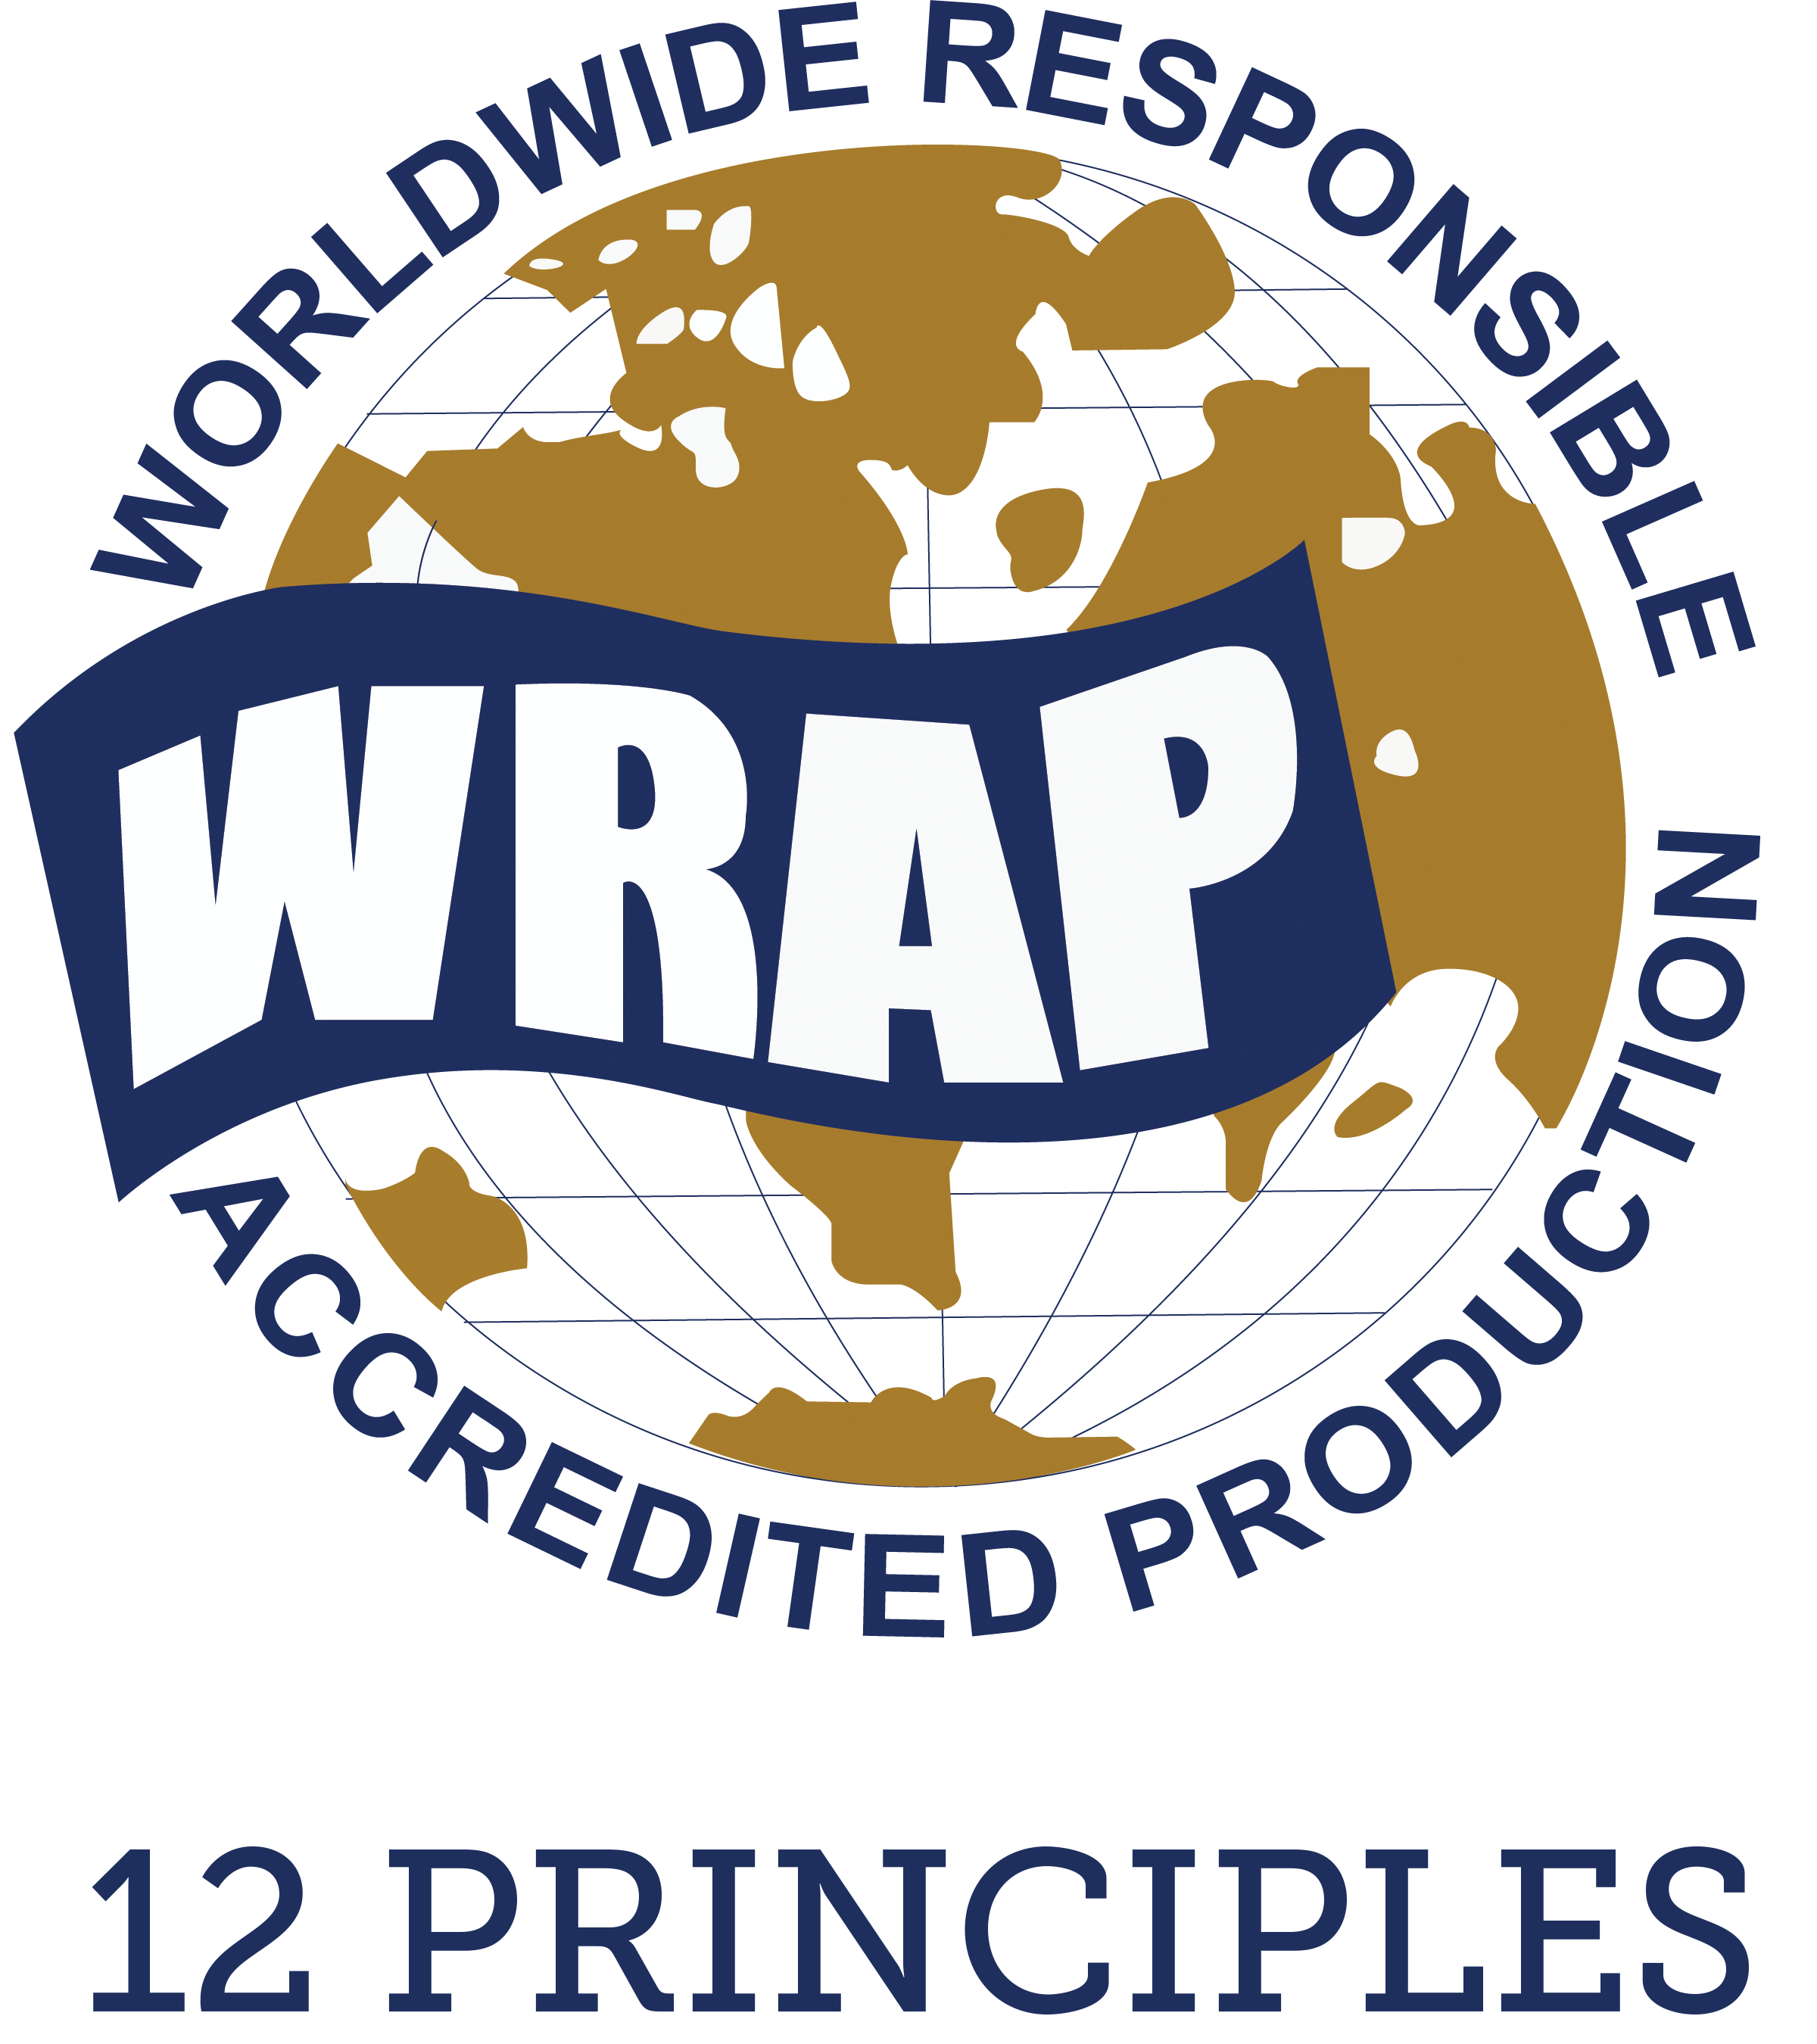 WRAP Certified, Worldwide Responsible Accredited Production